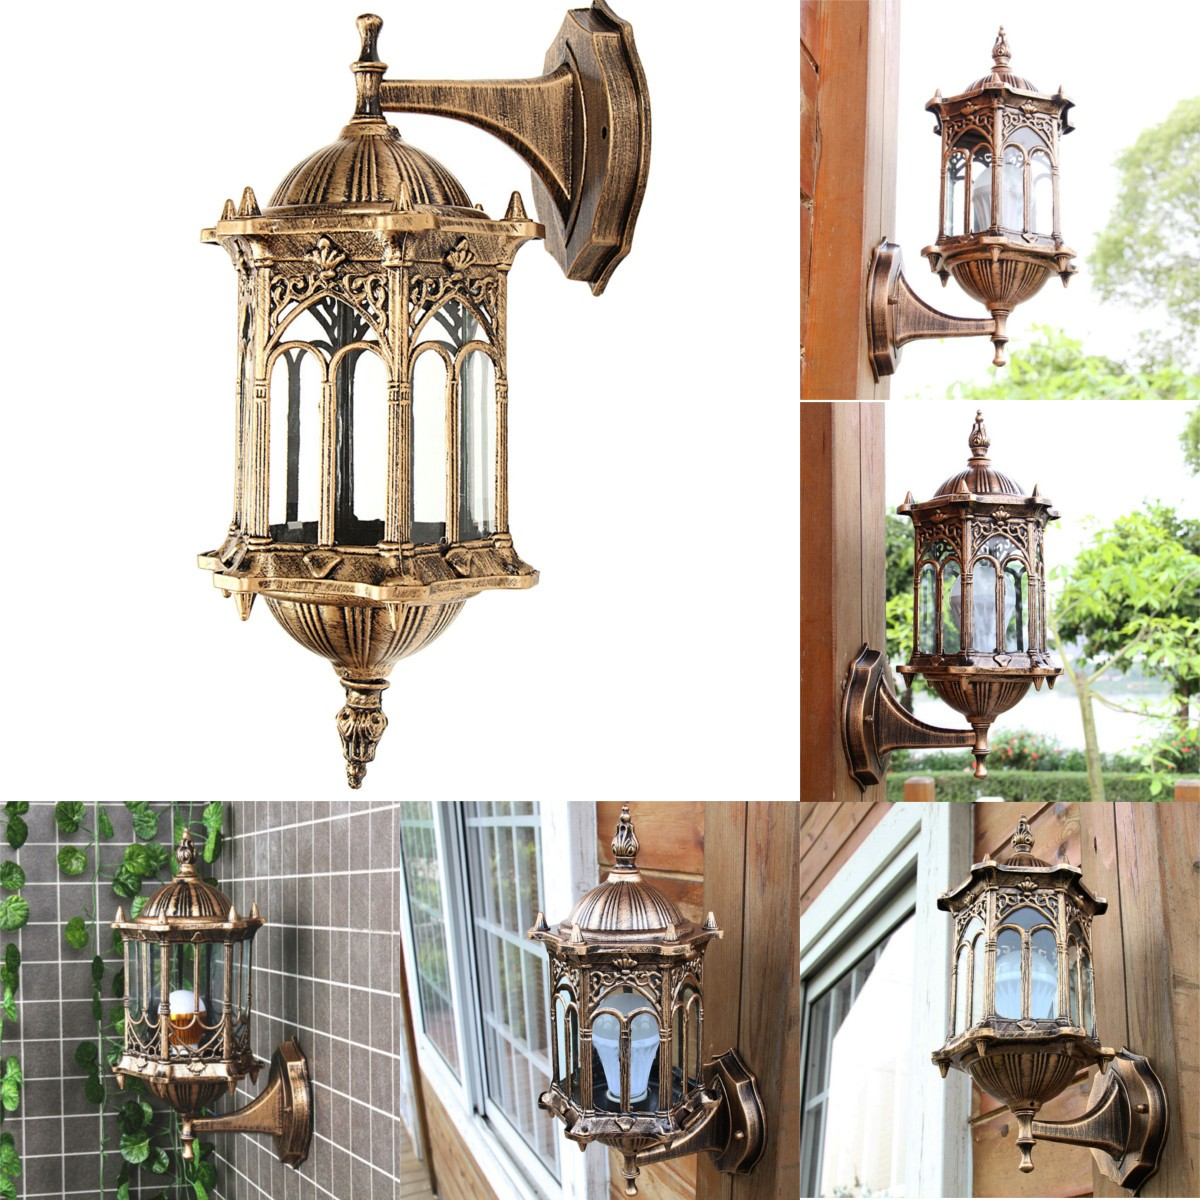 Outdoor bronze antique exterior wall light fixture aluminum glass outdoor bronze antique exterior wall light fixture aluminum glass lantern garden lamp aloadofball Choice Image